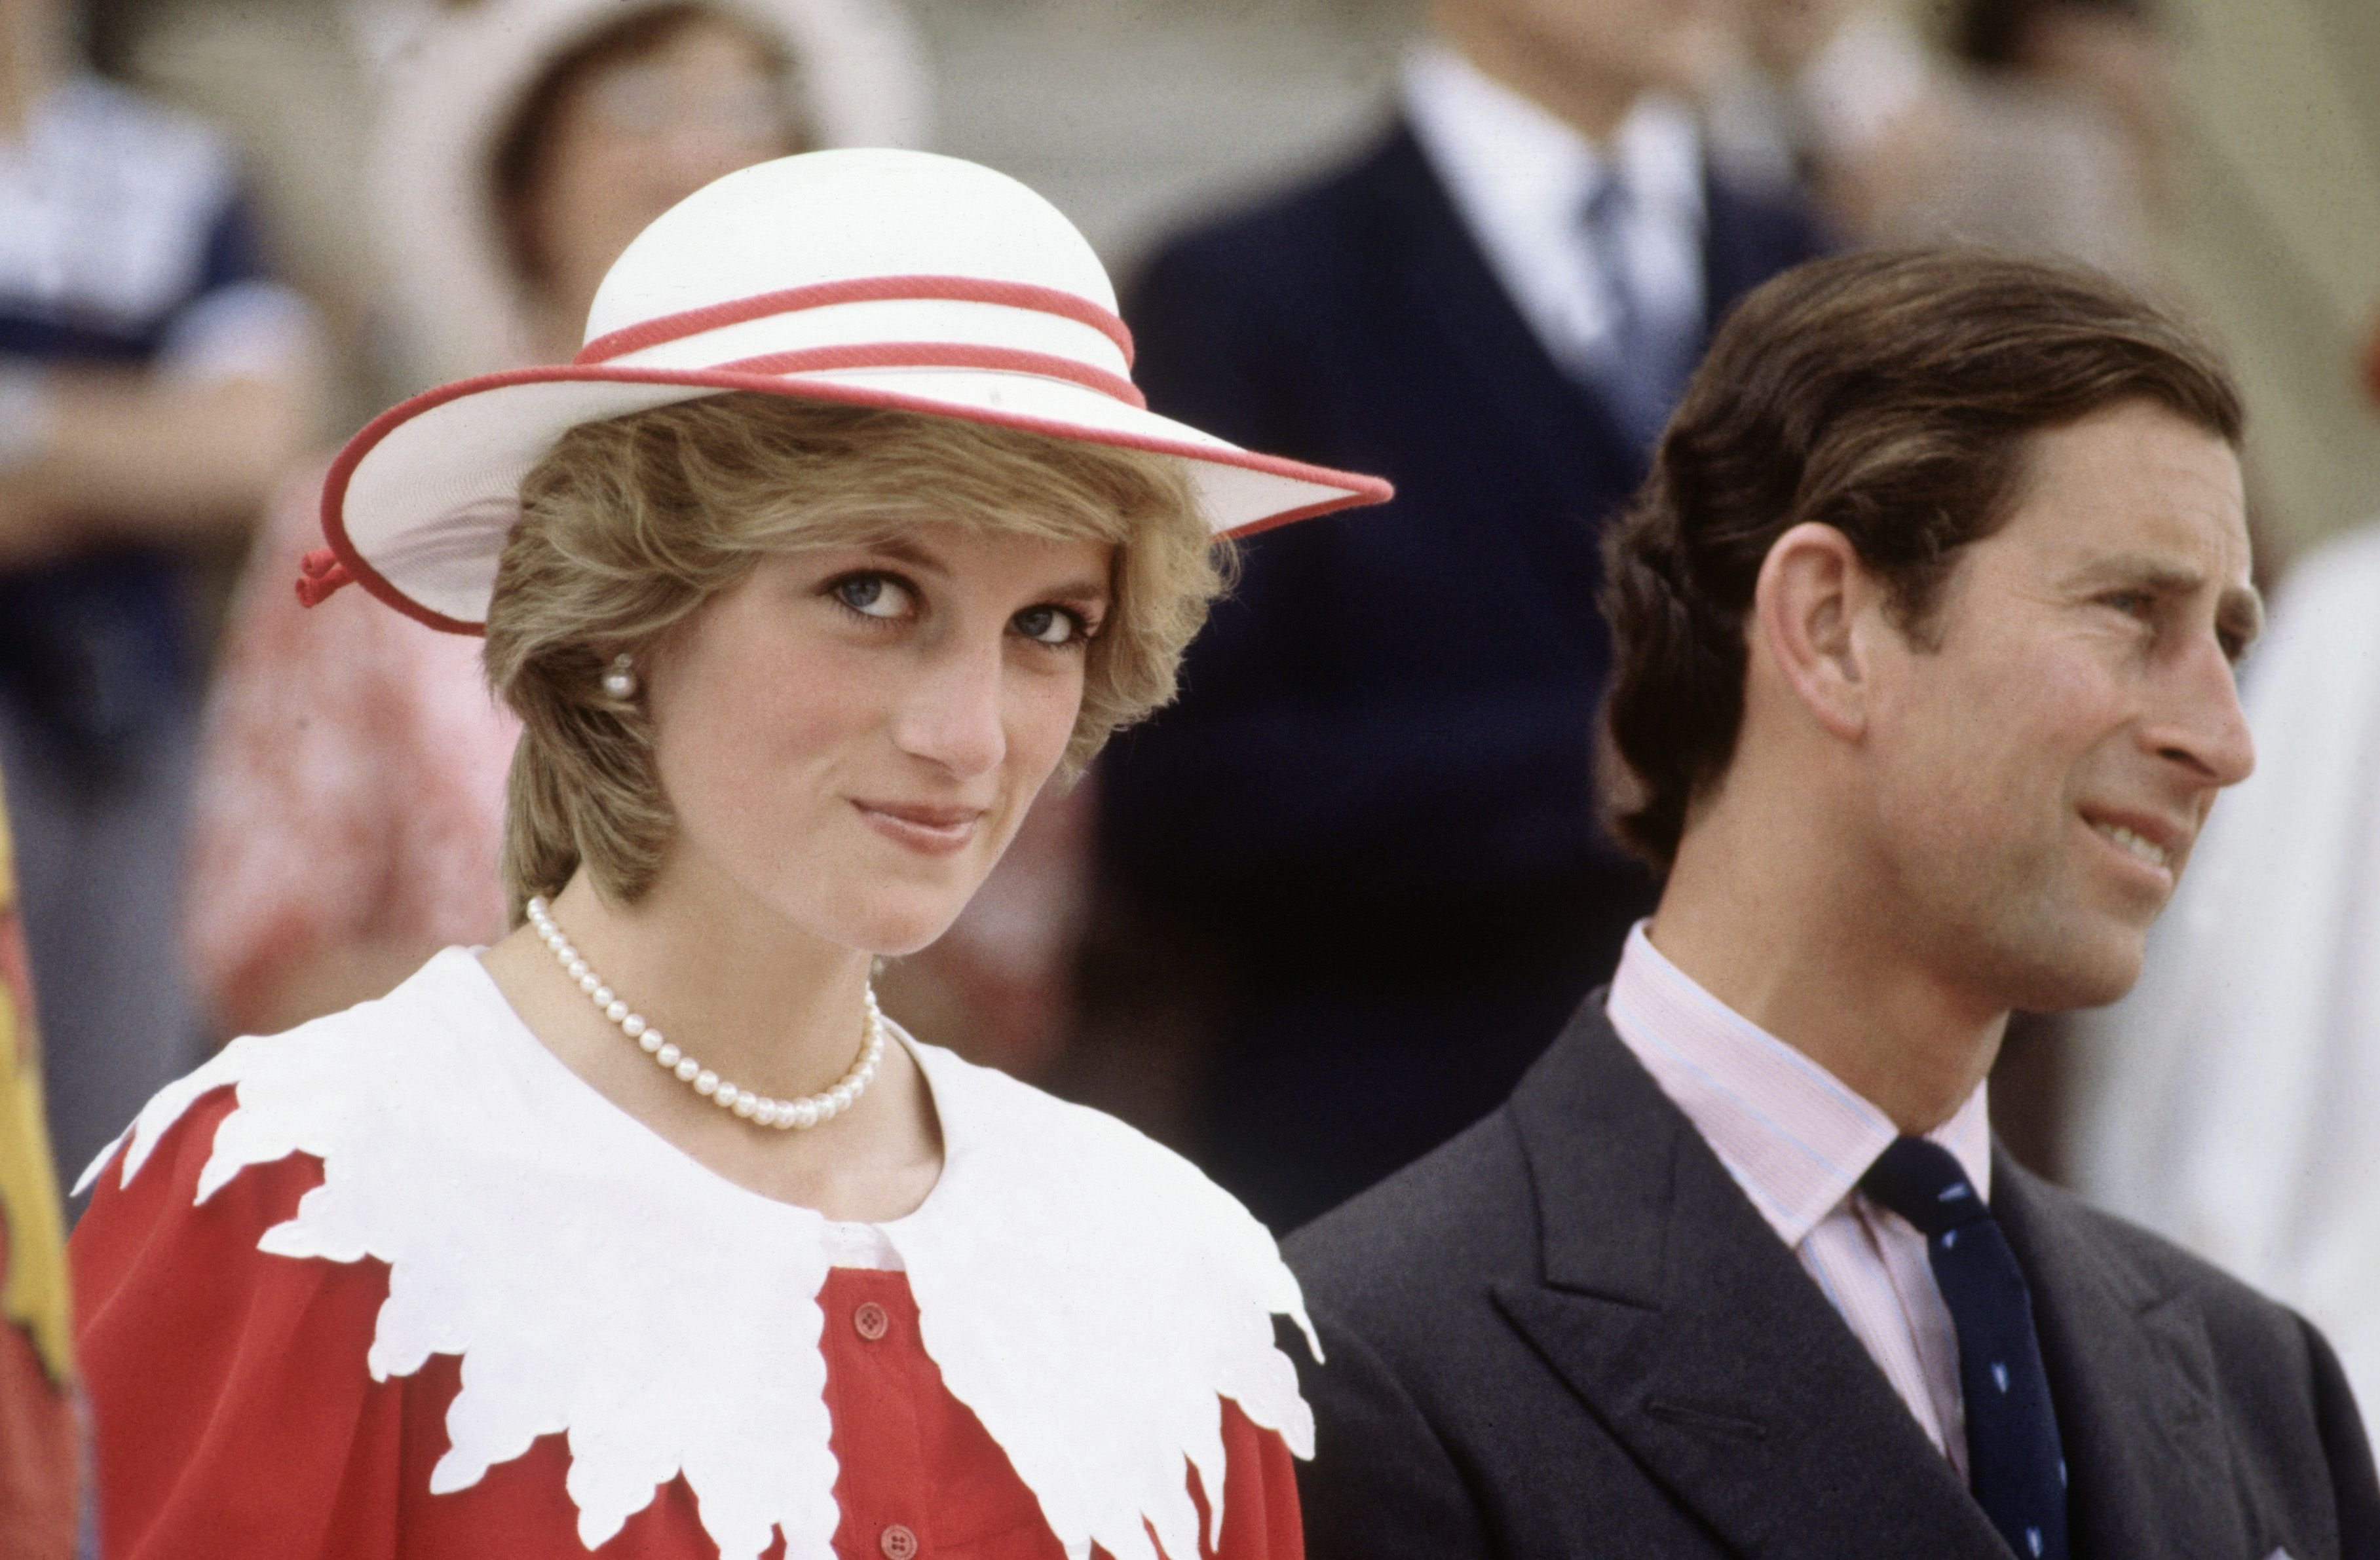 Image Source: Getty Images/David Levenson | Diana Princess of Wales and Prince Charles during the Royal Tour of Canada